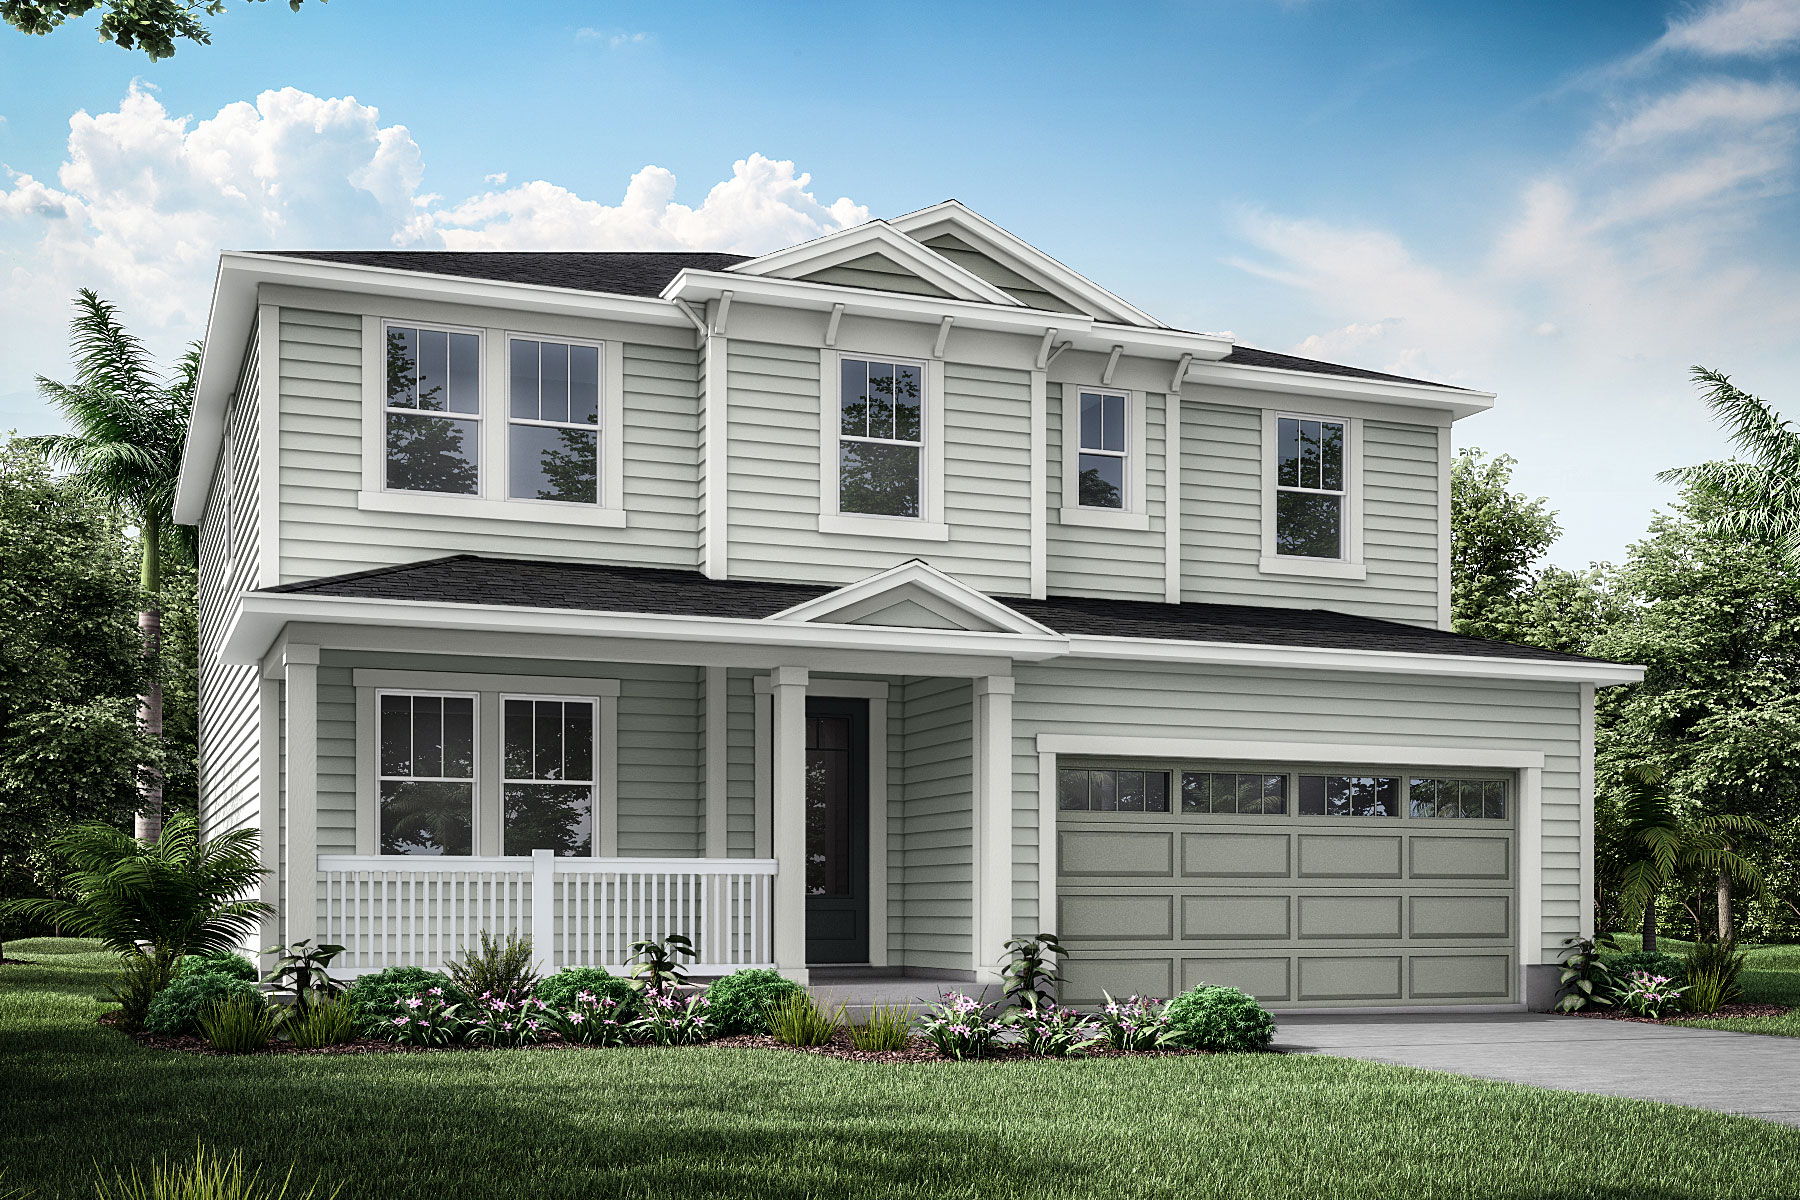 Willow Plan JAX_Wildlight_Willow_Coastal at Forest Park at Wildlight in Yulee Florida by Mattamy Homes